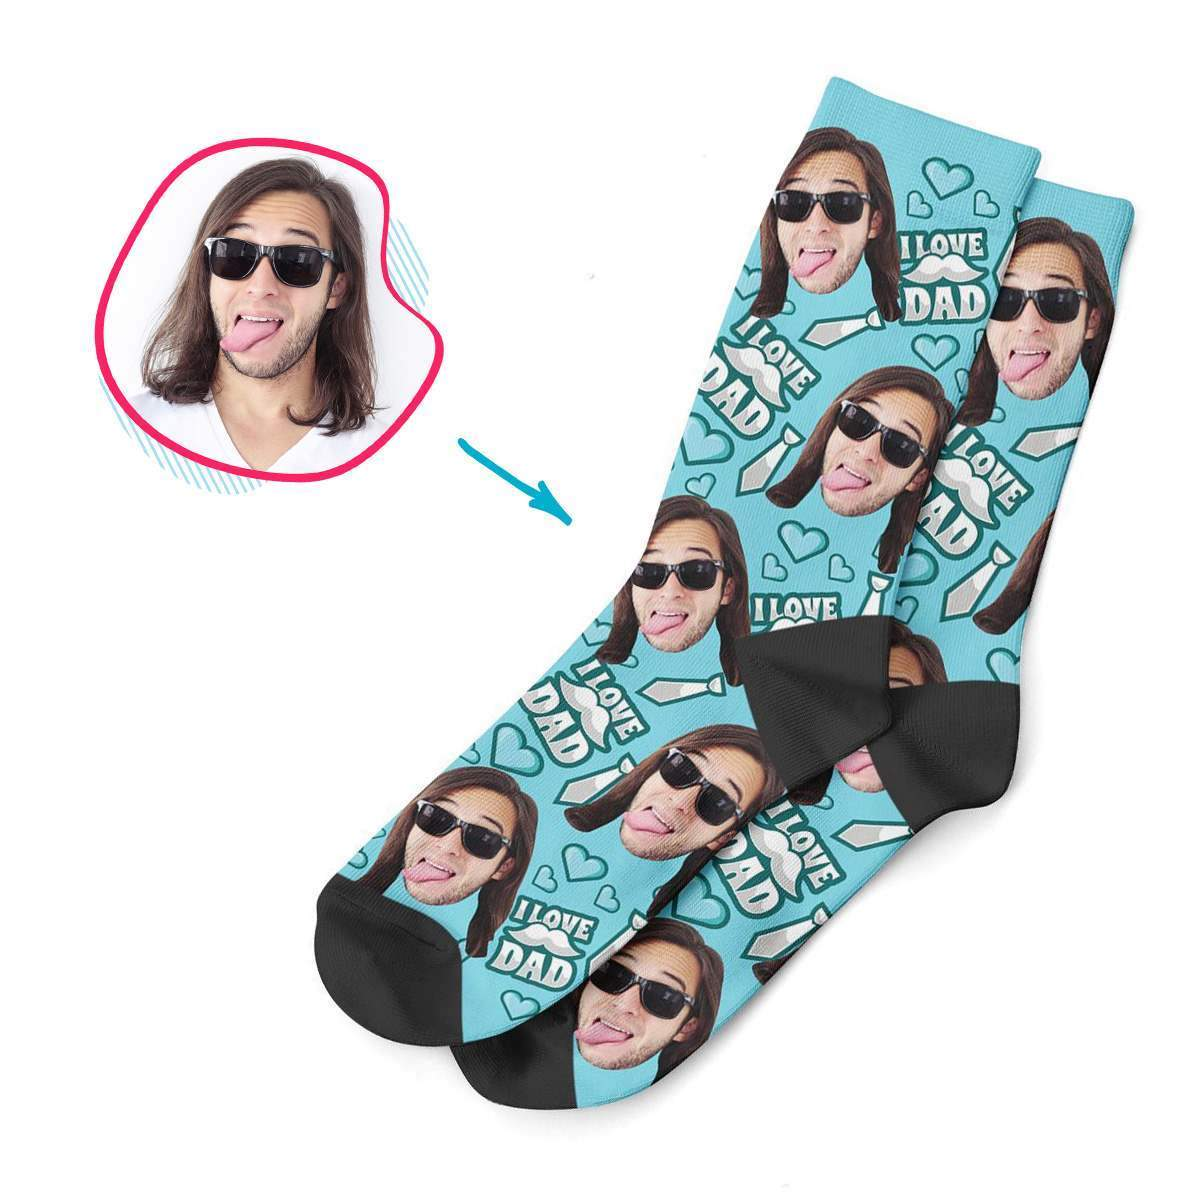 blue Love Dad socks personalized with photo of face printed on them